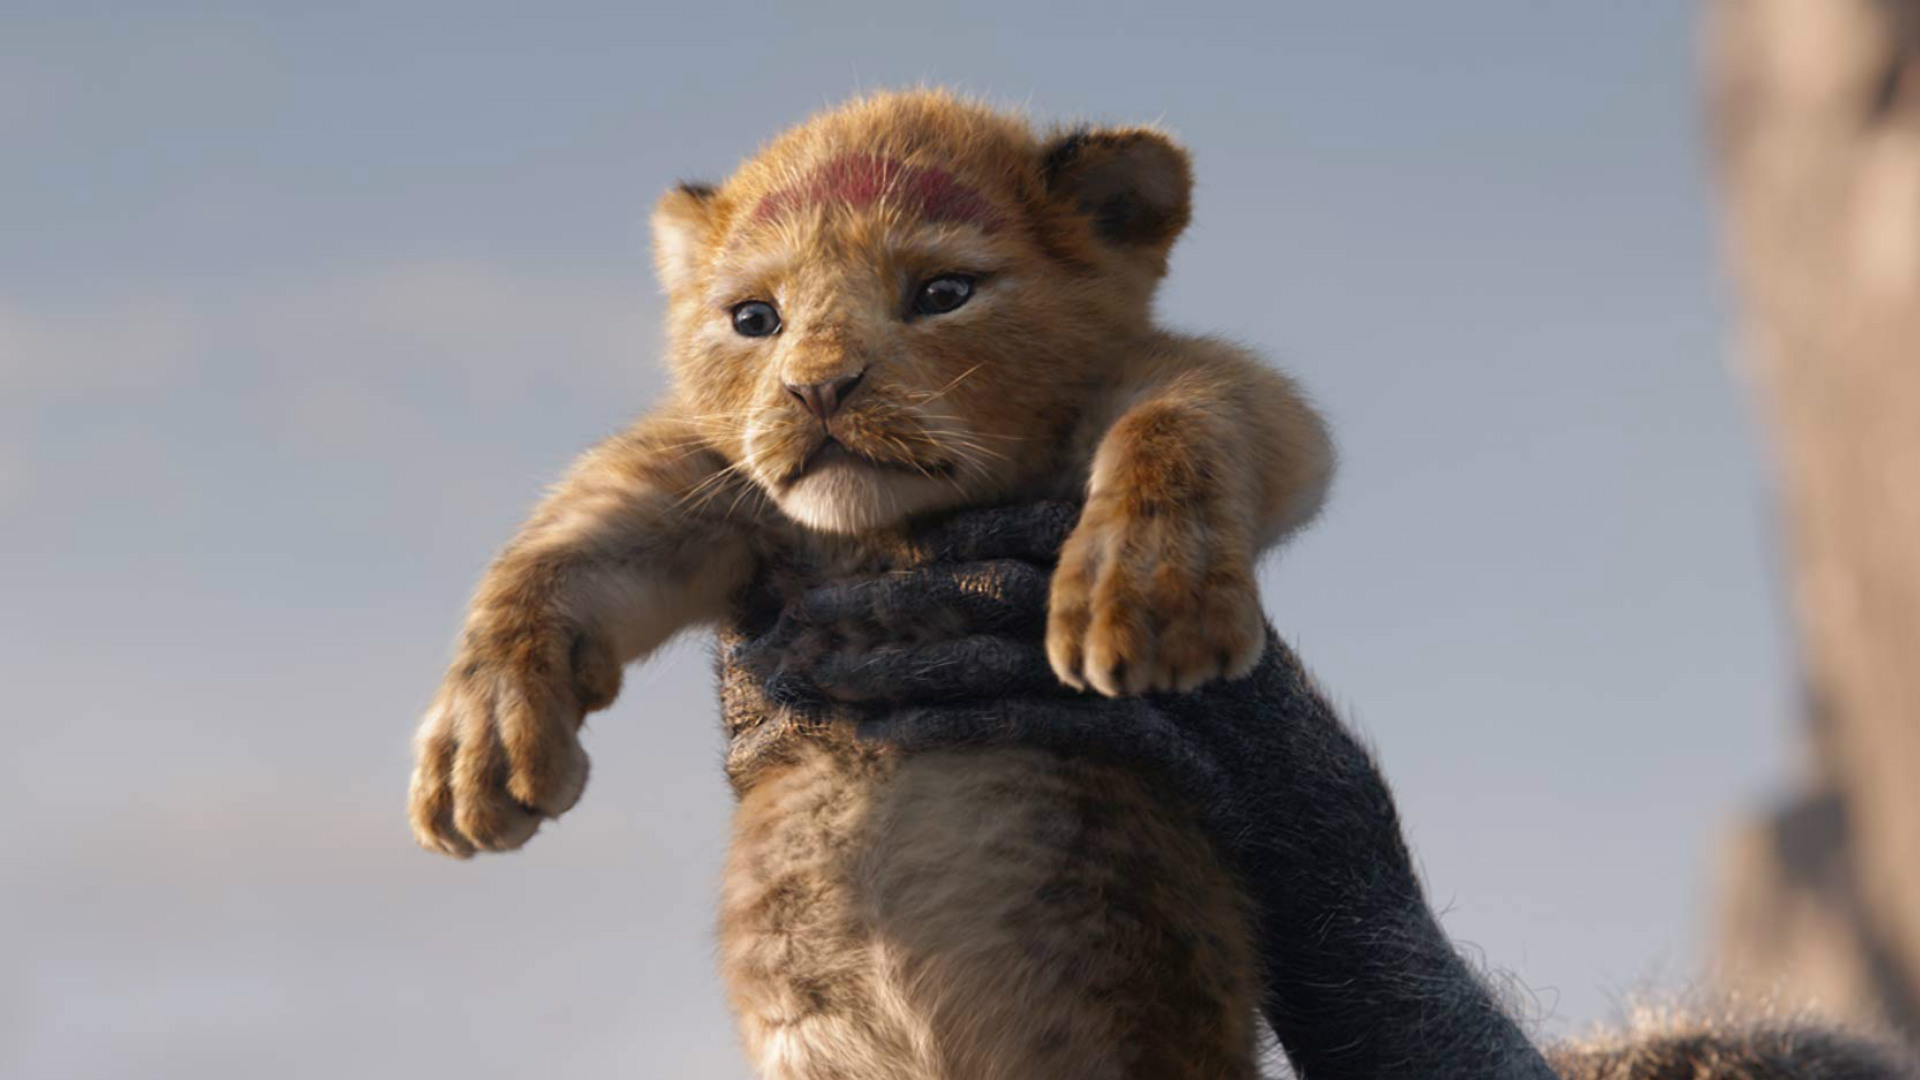 The Lion King Clip: Can You Feel the Love Tonight?